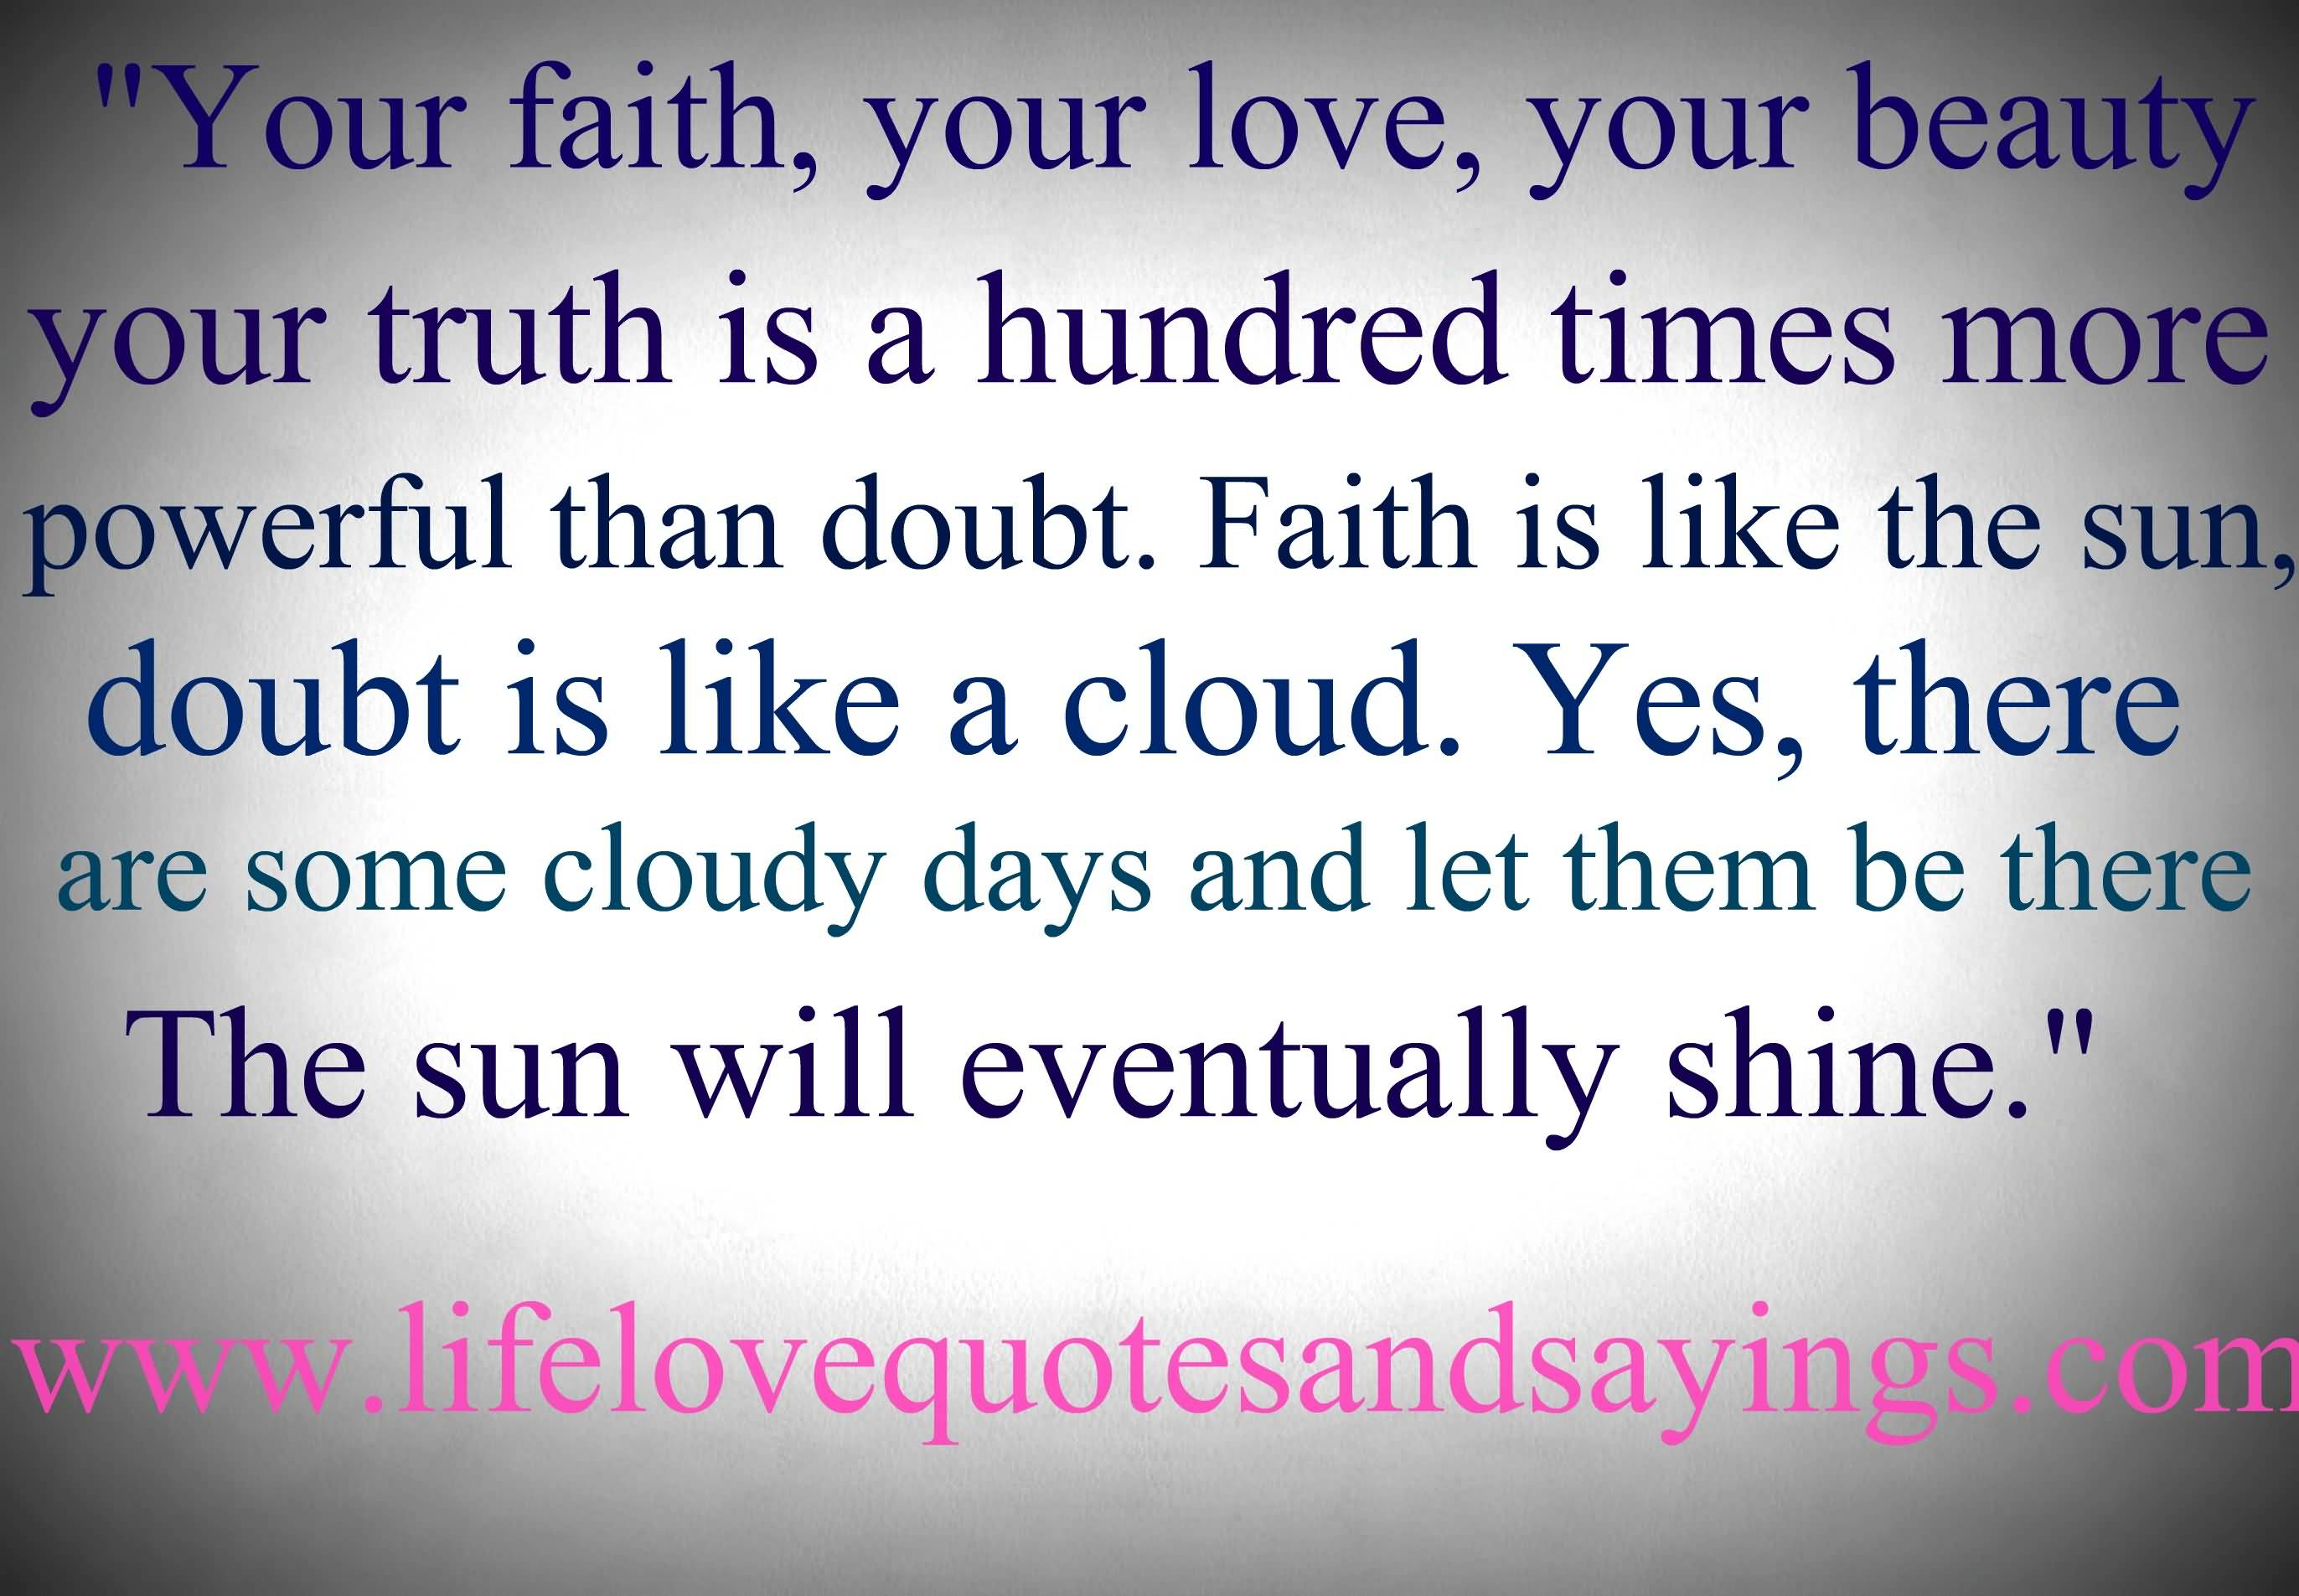 Inspirational Quotes About Faith And Love 04